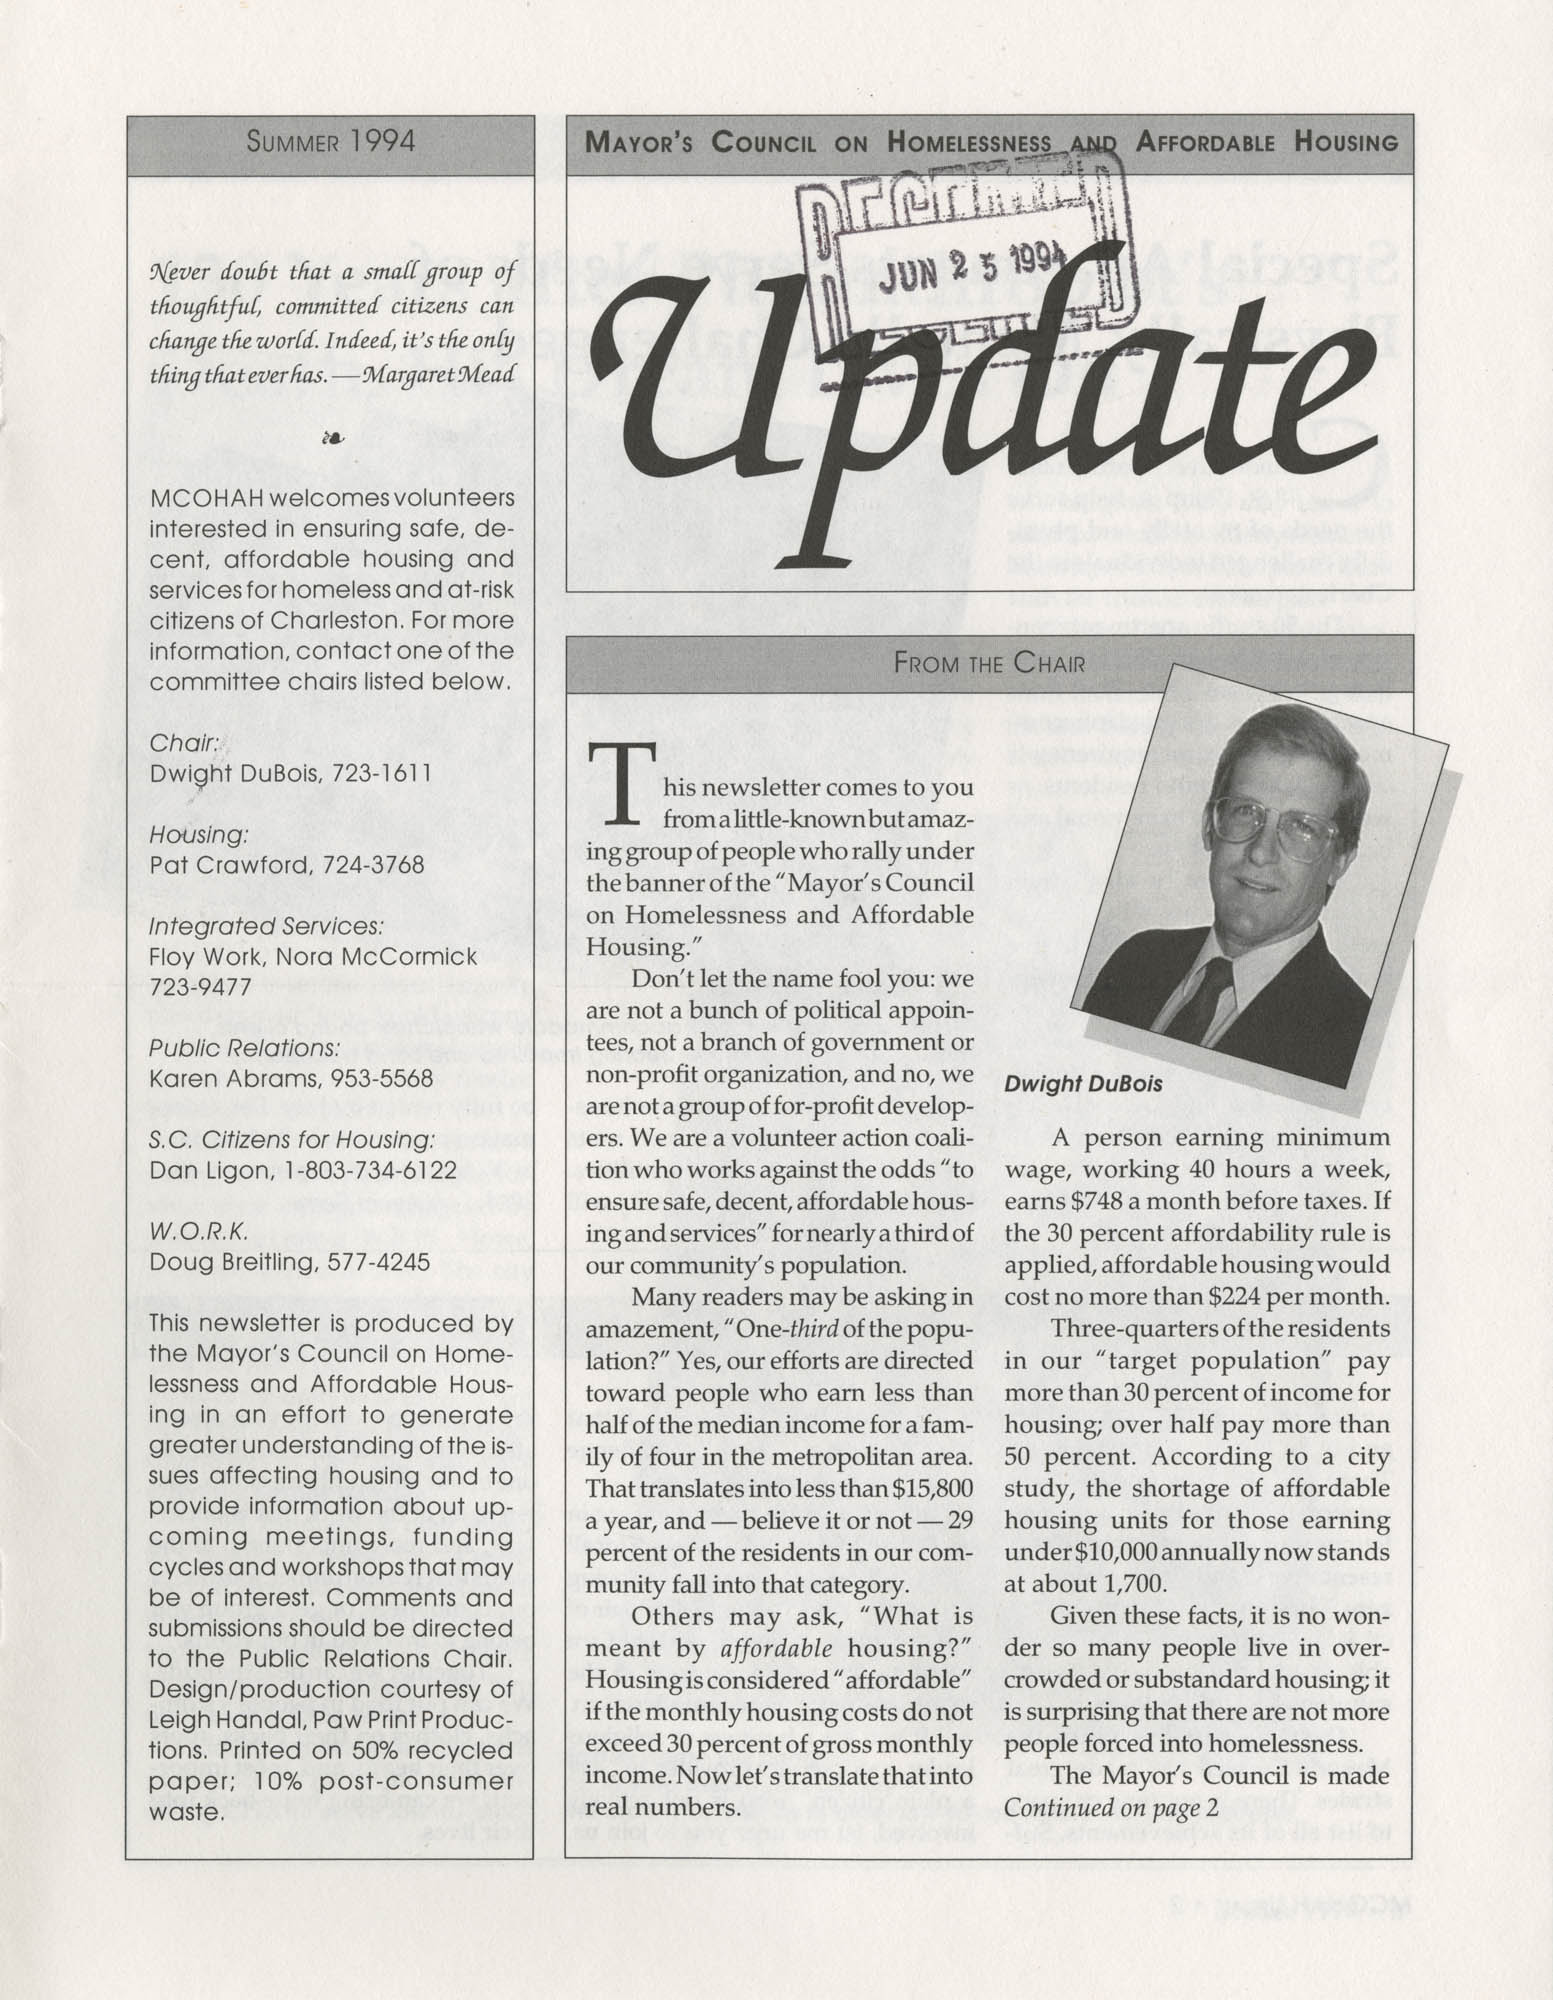 Mayor's Council on Homelessness and Affordable Housing Update Newsletter, Summer 1994, Page 1